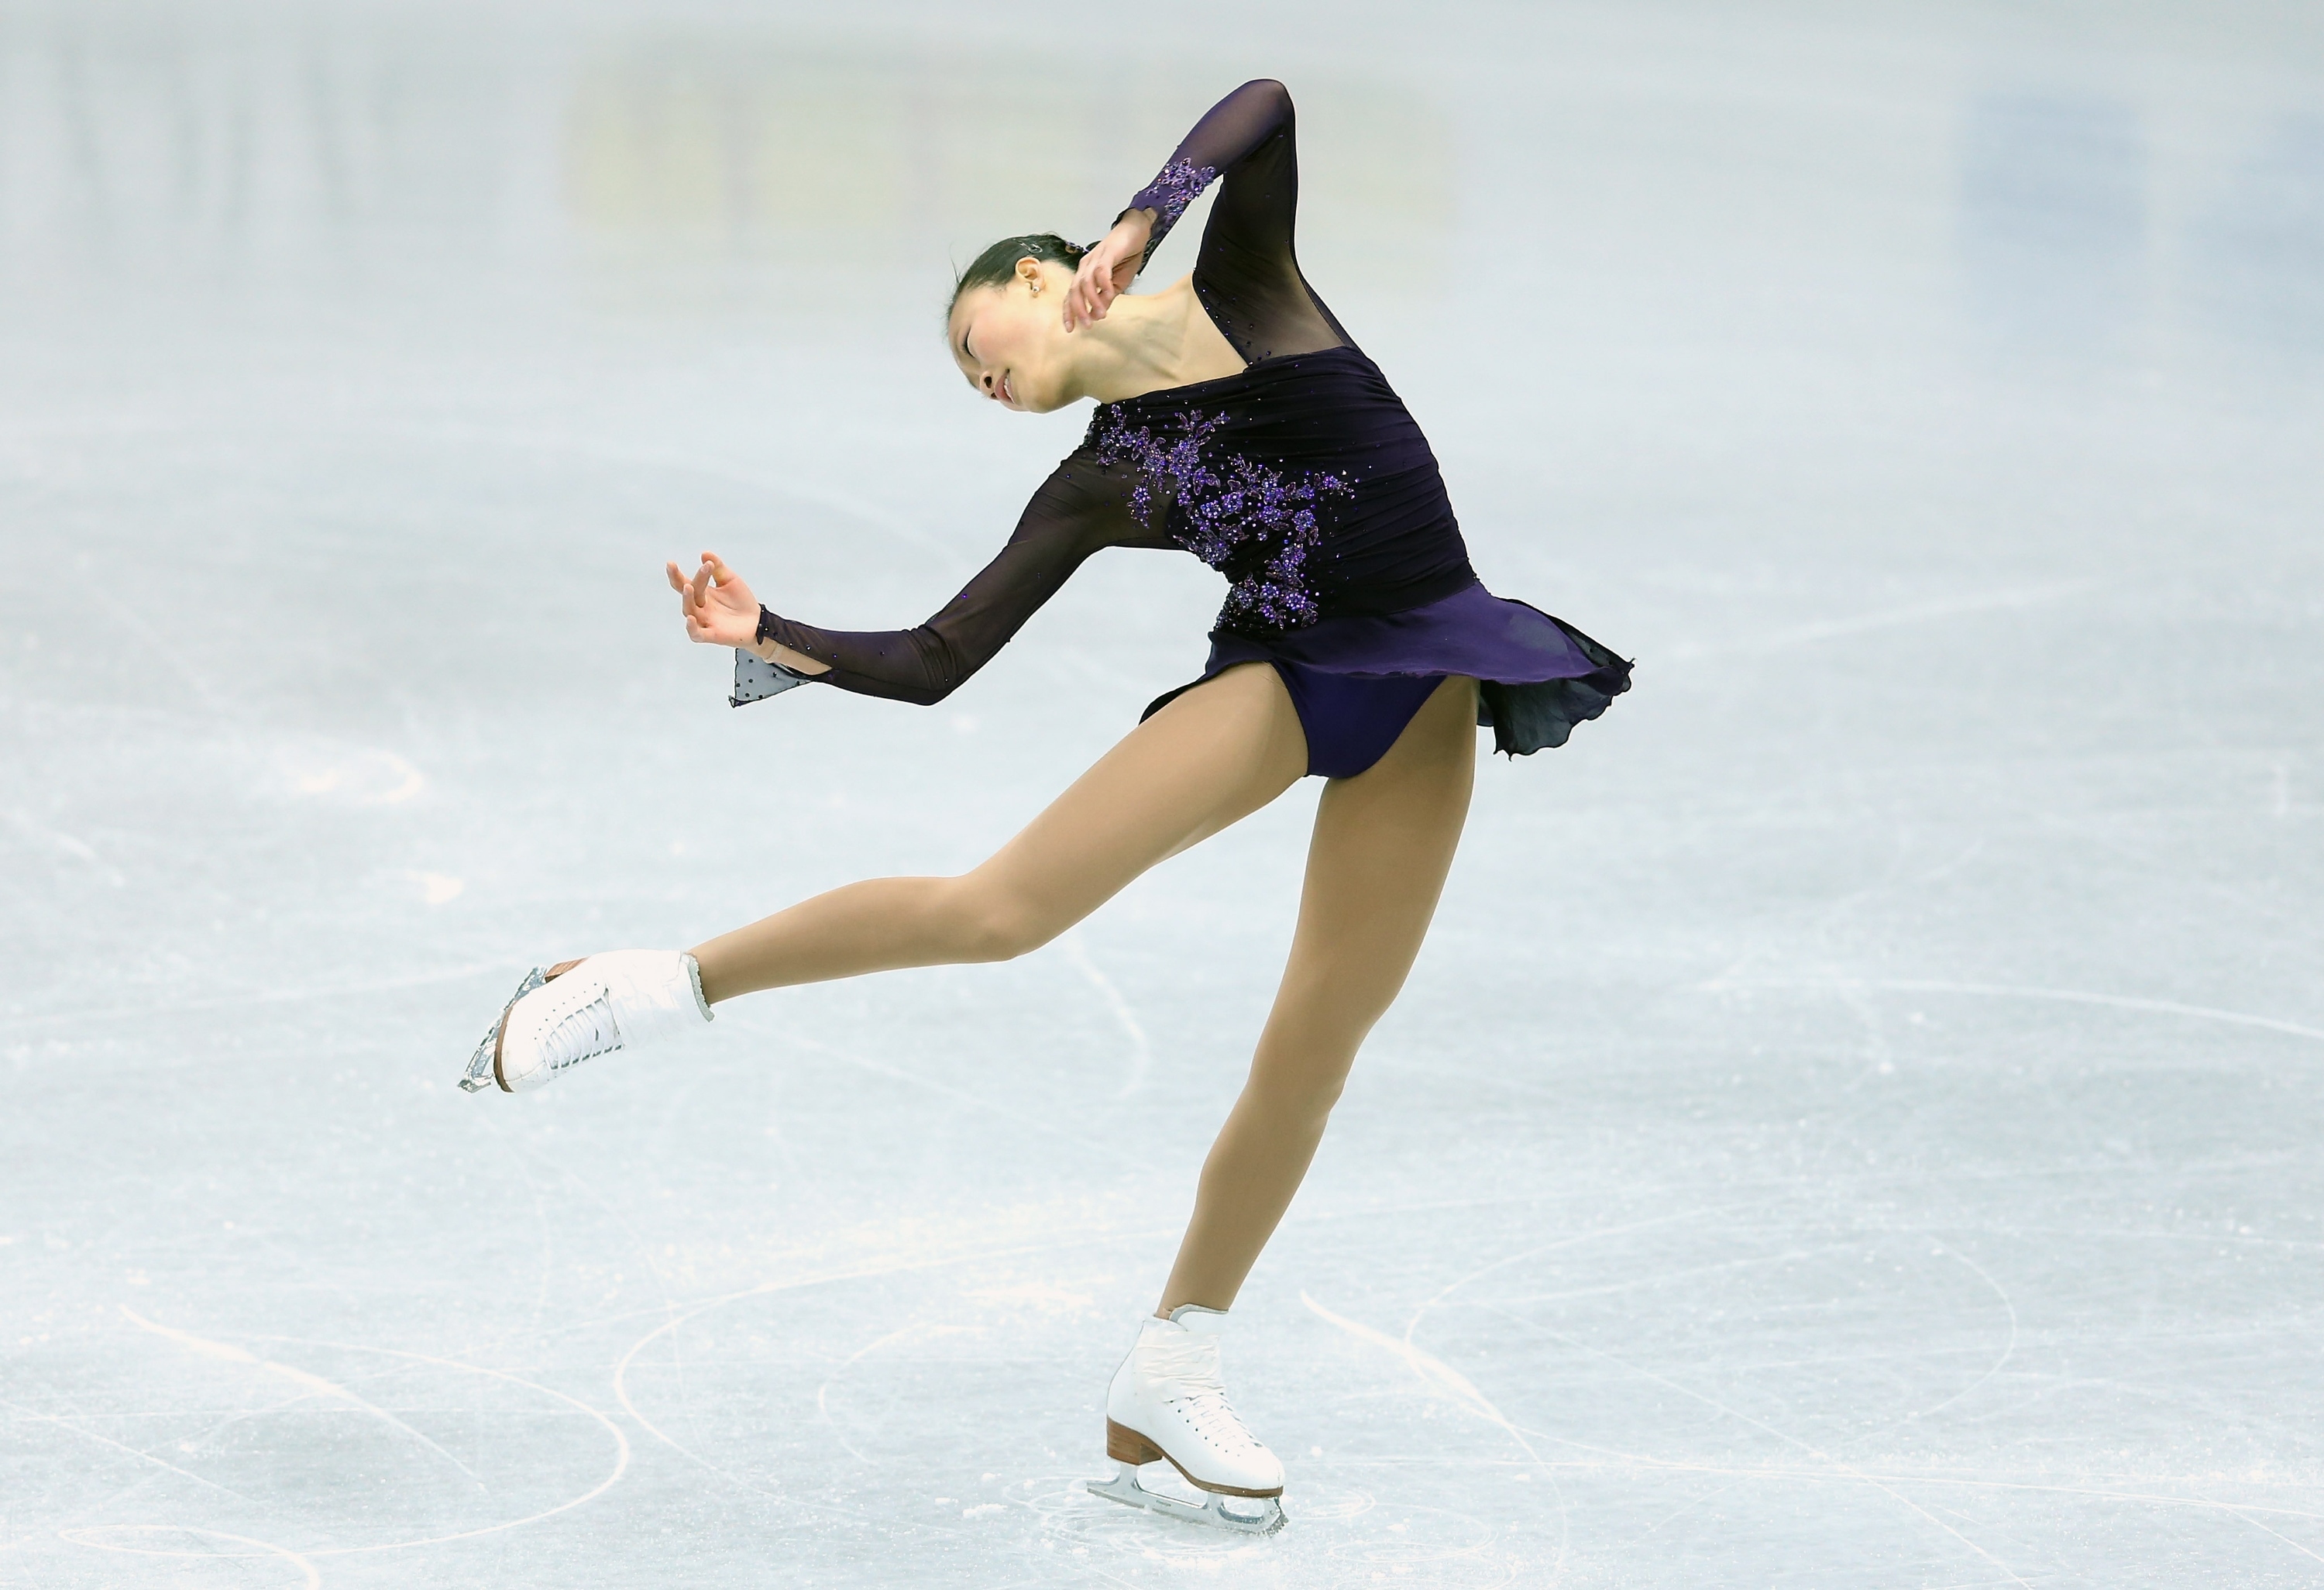 SOCHI, RUSSIA - DECEMBER 07: Christina Gao of USA performs in the Ladies Short Program during the Grand Prix of Figure Skating Final 2012 at the Iceberg Skating Palace on December 7, 2012 in Sochi, Russia. (Photo by Julian Finney/Getty Images)